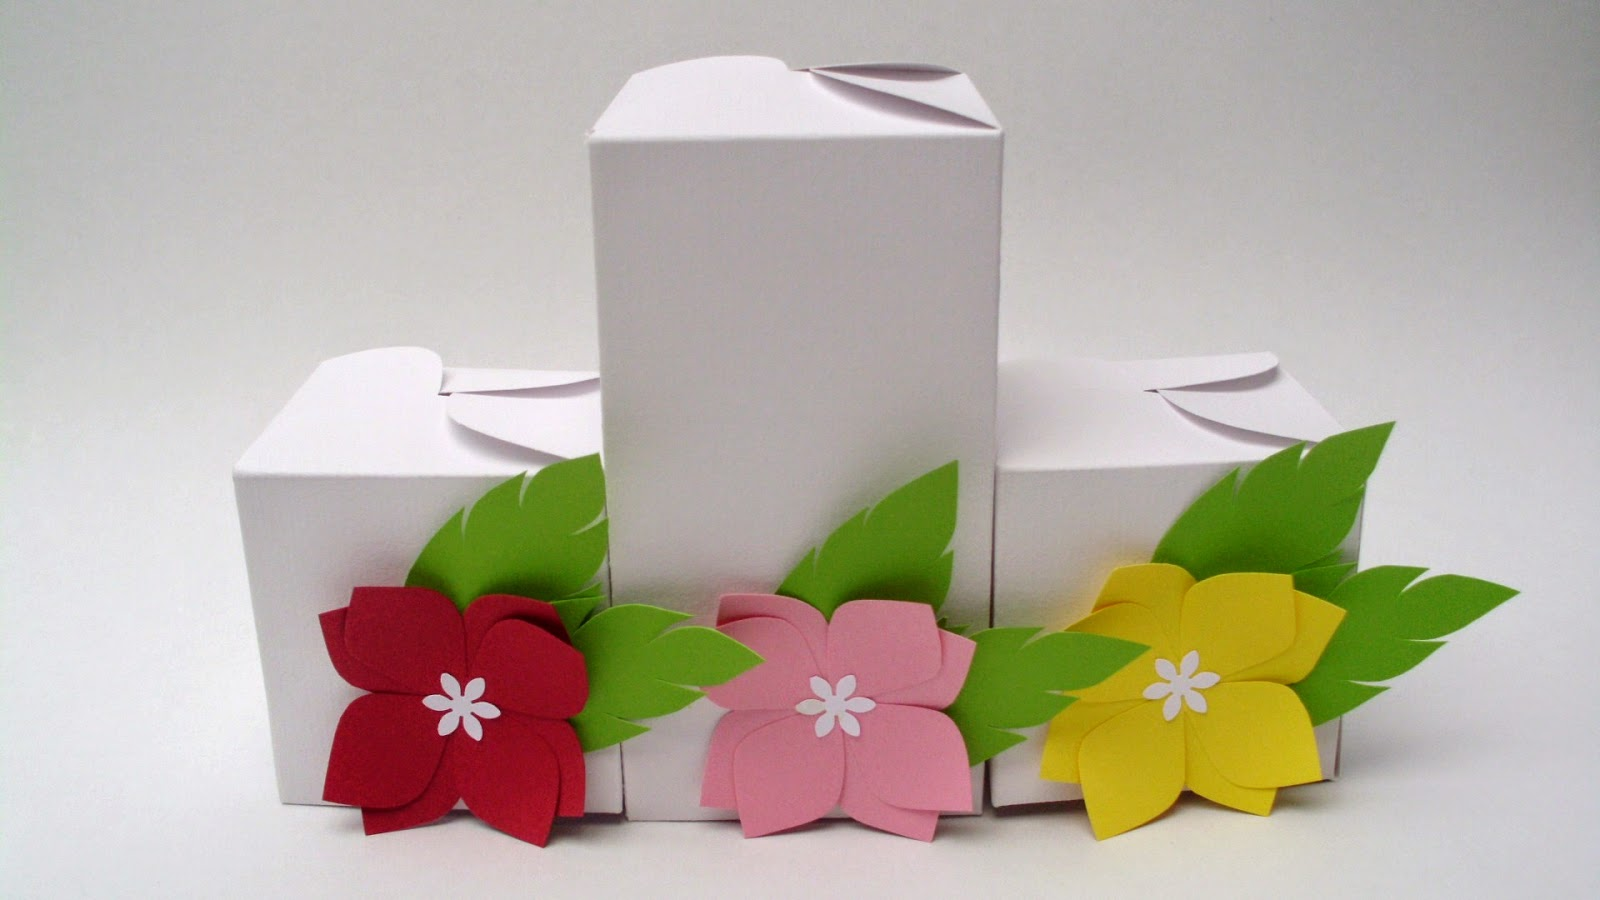 Square card boxes with paper flowers